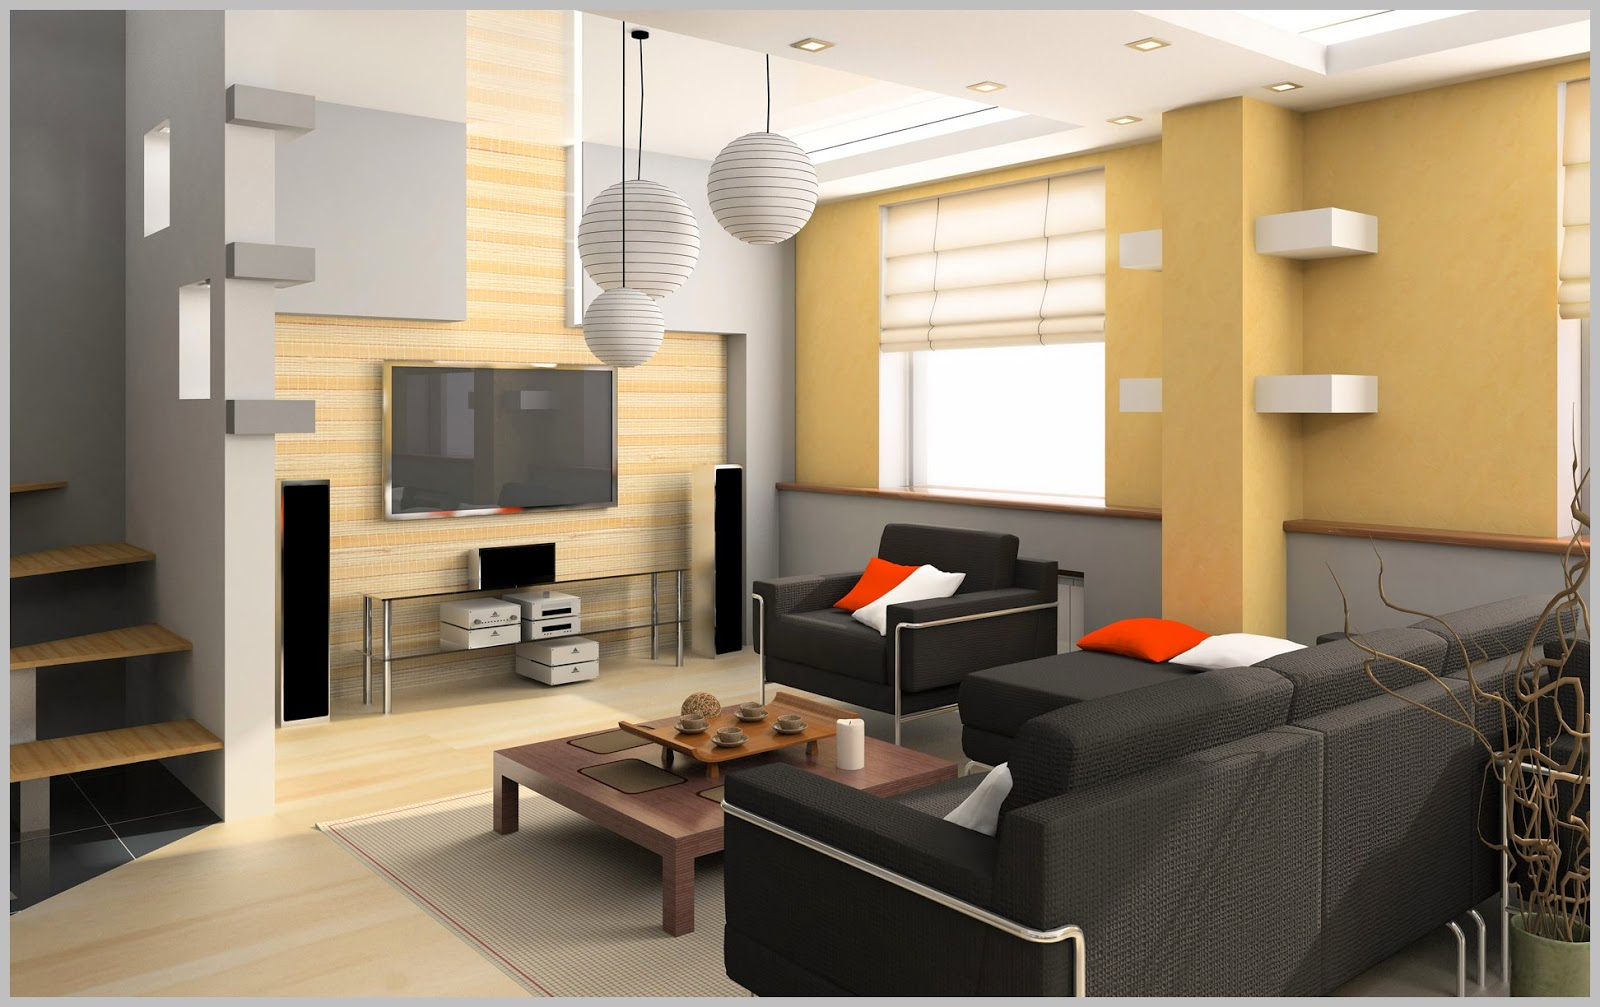 Famous Home Designers famous home designers contemporary lounge room home interior. 1